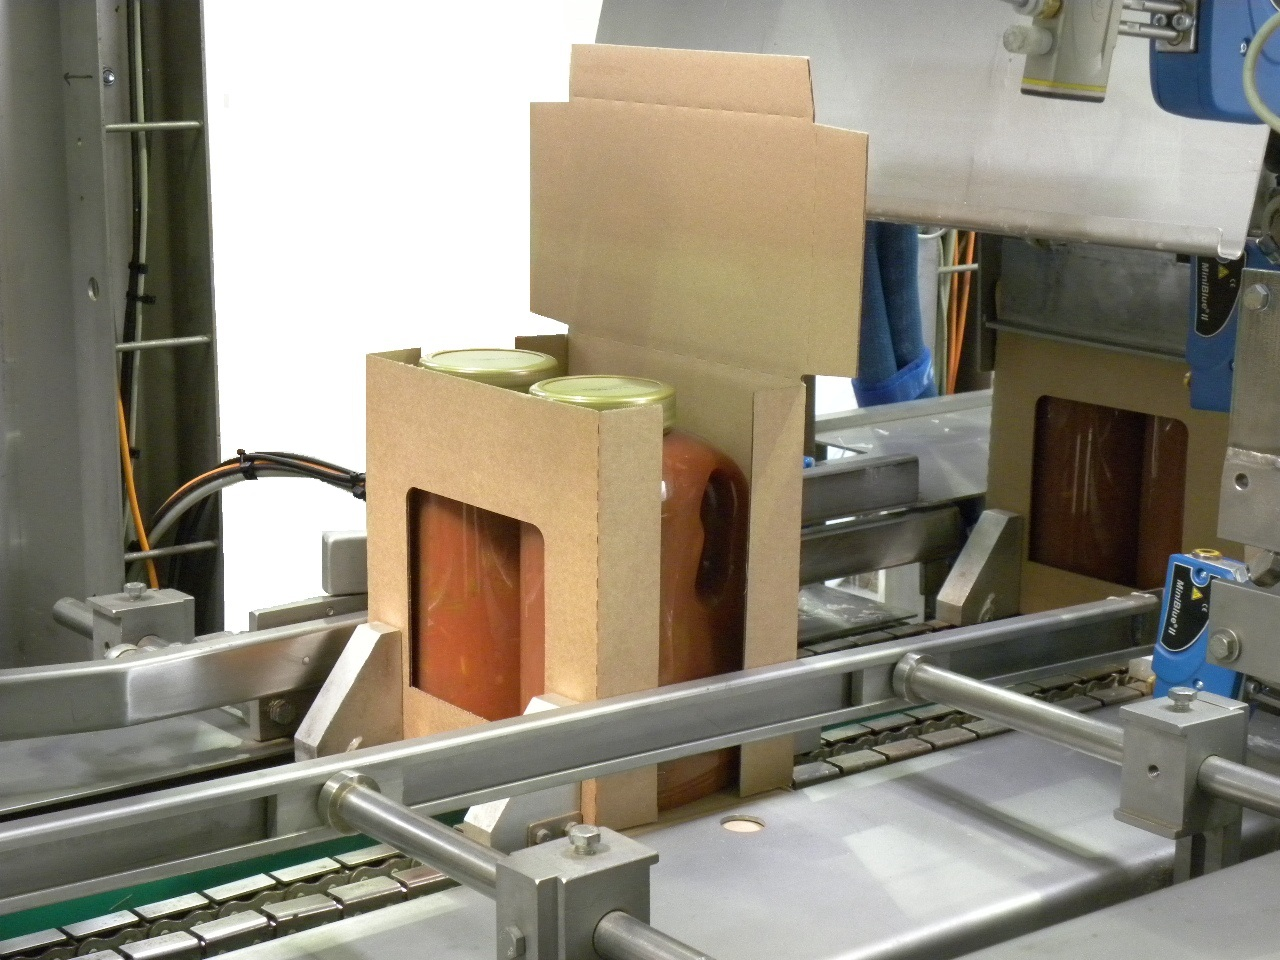 Case Erector Linkx Packaging Systems